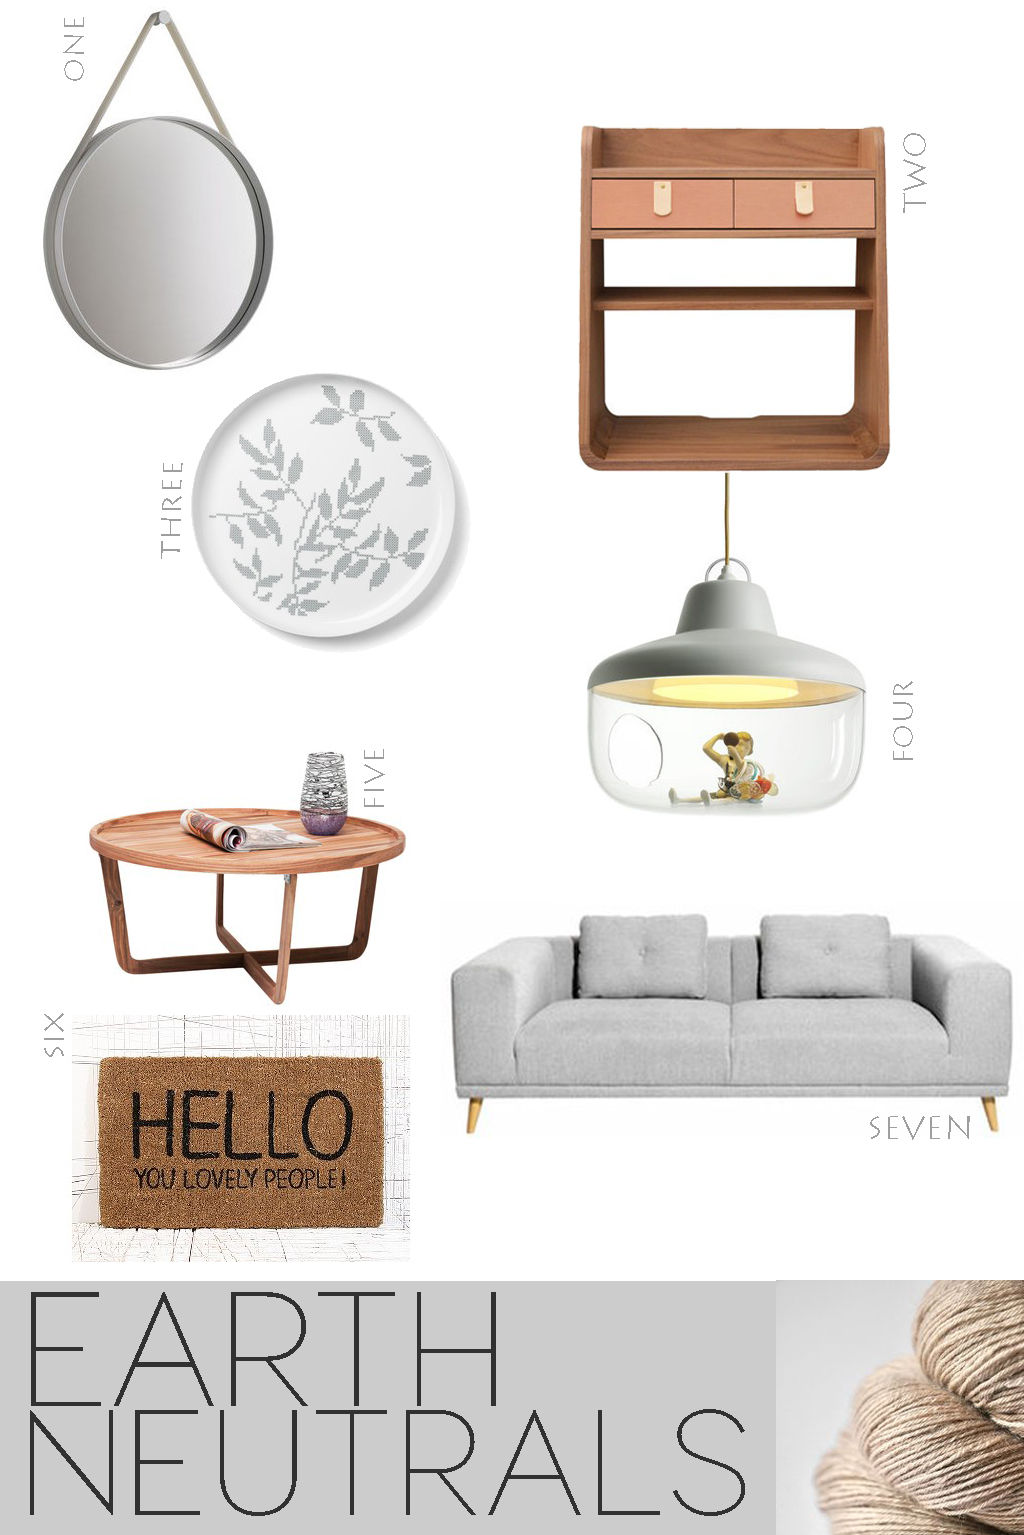 Living room online shopping, living room shoplist, moodboard living room, scandinavian living room furniture, living room eshop, grey living room